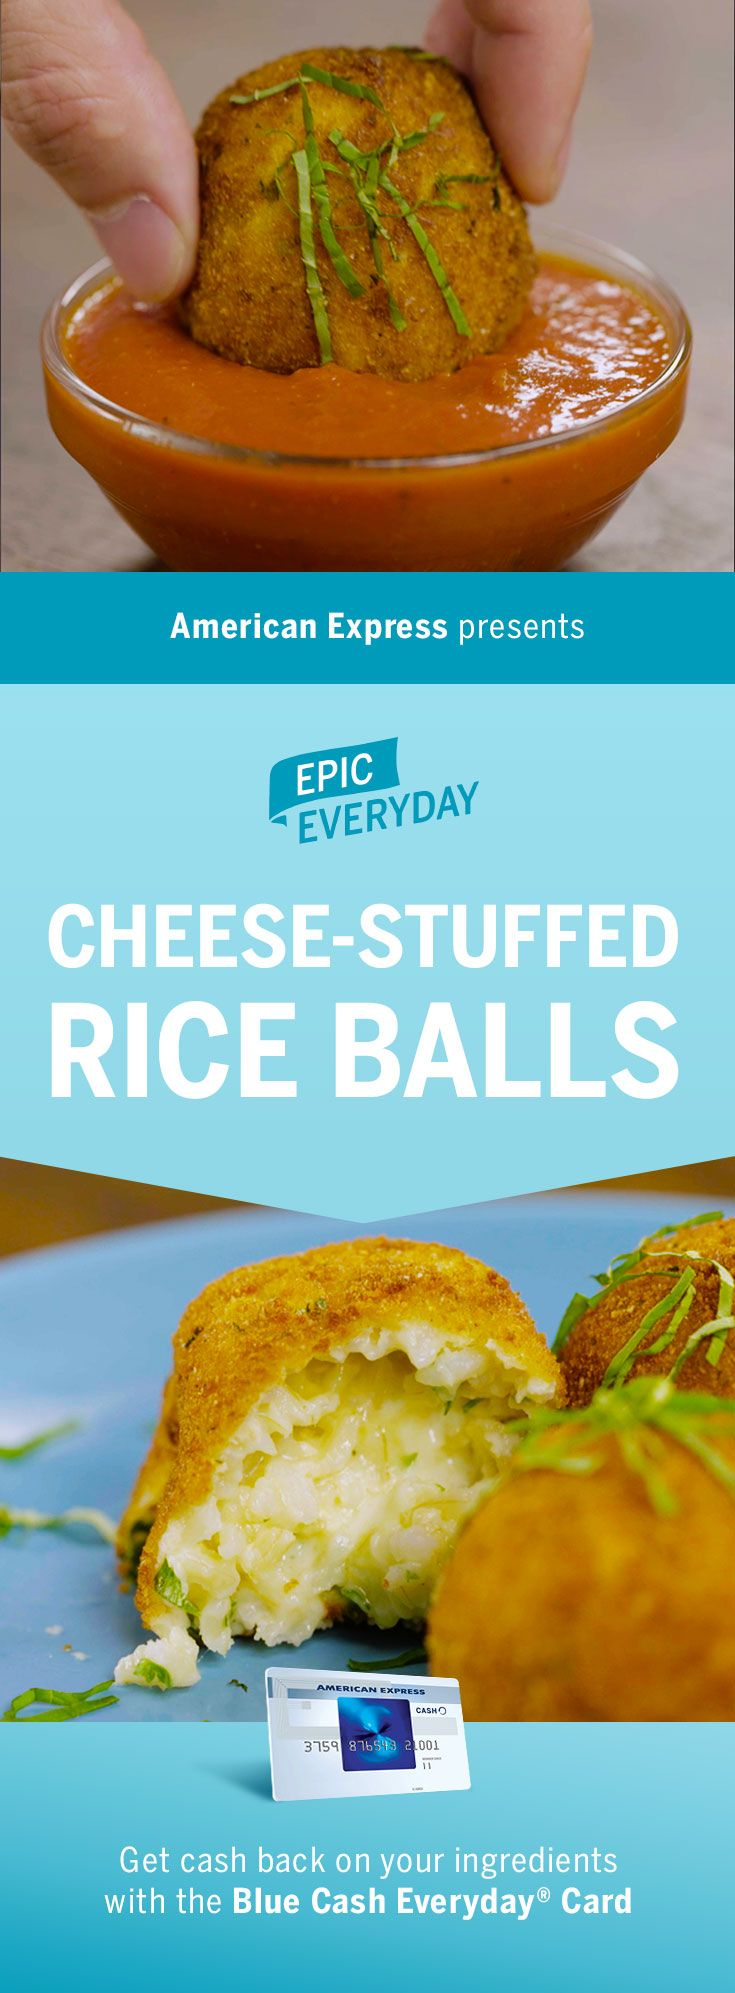 Who can resist this epic dish? We teamed with Buzzfeed for an Cheese-Stuffed Rice Ball recipe! With cheesy mozzarella inside and bread crumbs outside, this appetizer is an easy crowd pleaser. Great with any rice – white, brown, even leftover! Shop for the